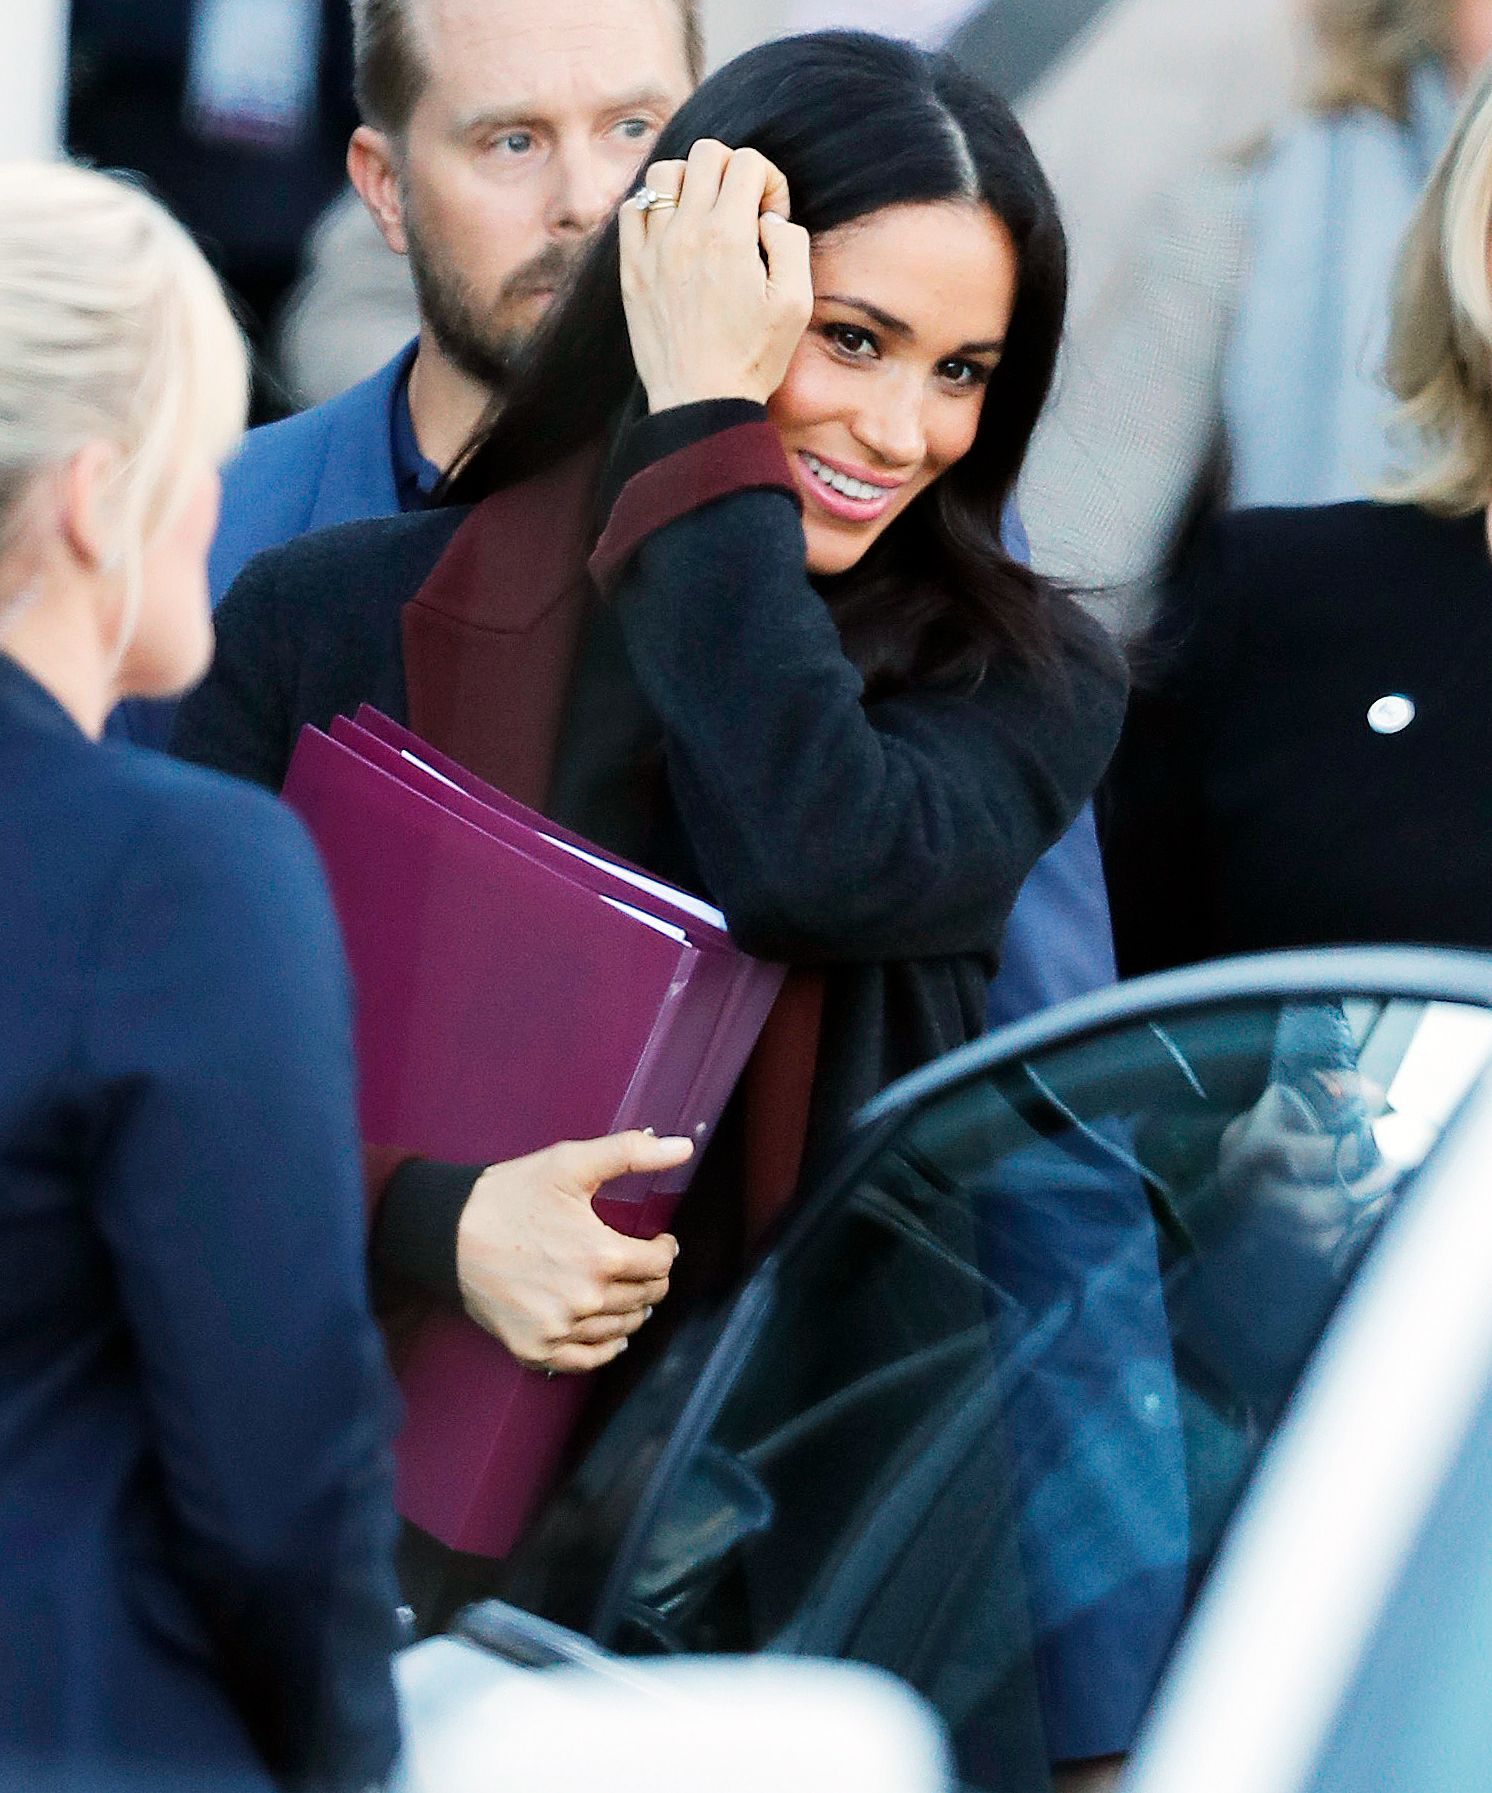 Prince Harry Duchess Meghan Sydney Arrival - Meghan carried folders that likely filled her in on the things she'll be seeing and people she'll be meeting during her first international tour.